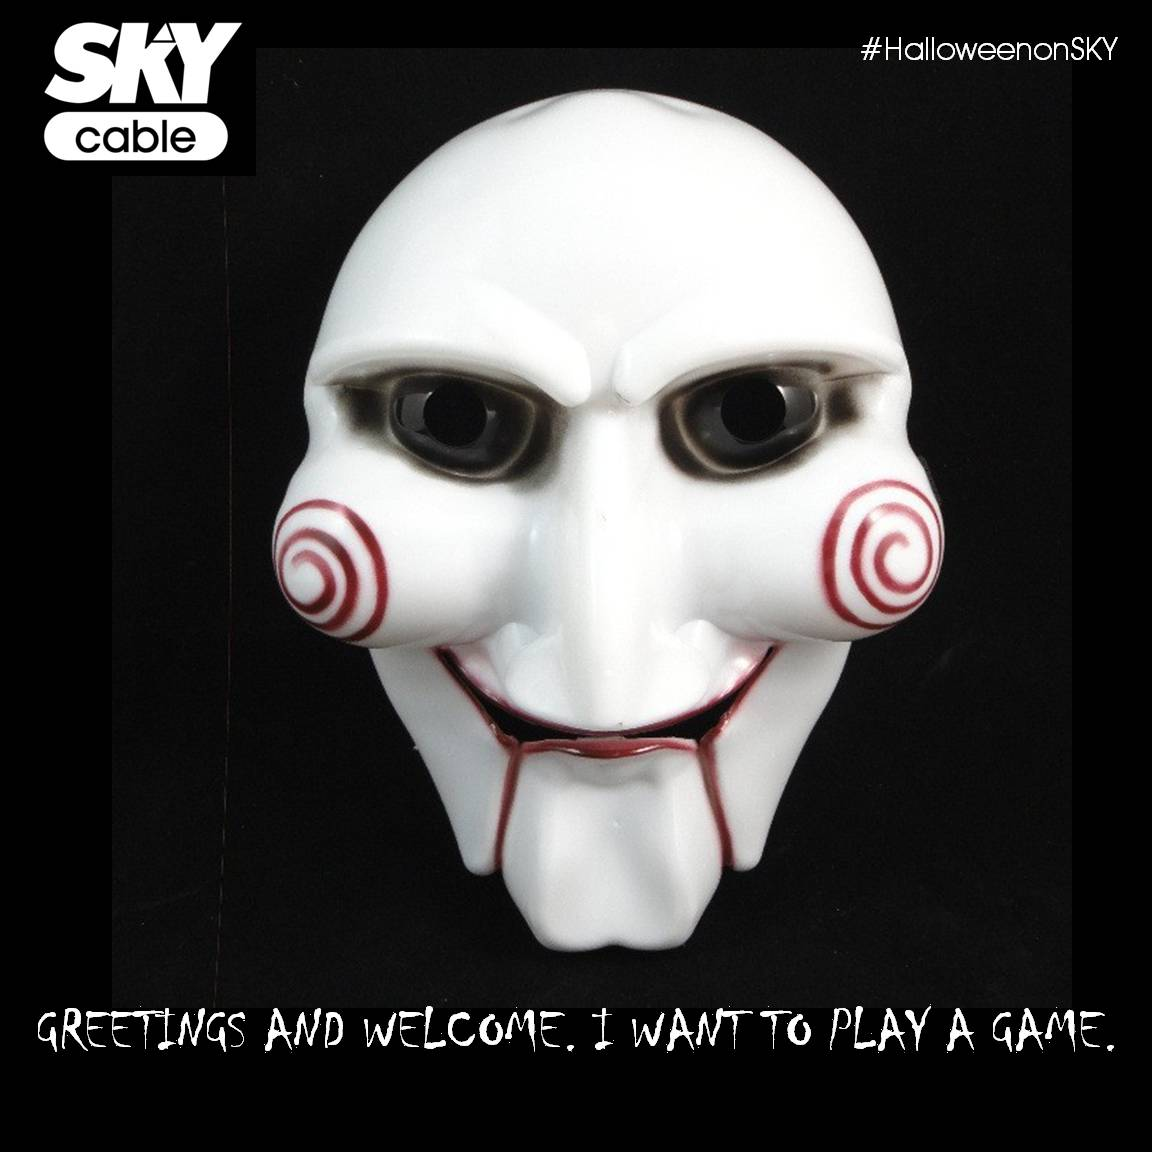 i want to play a game